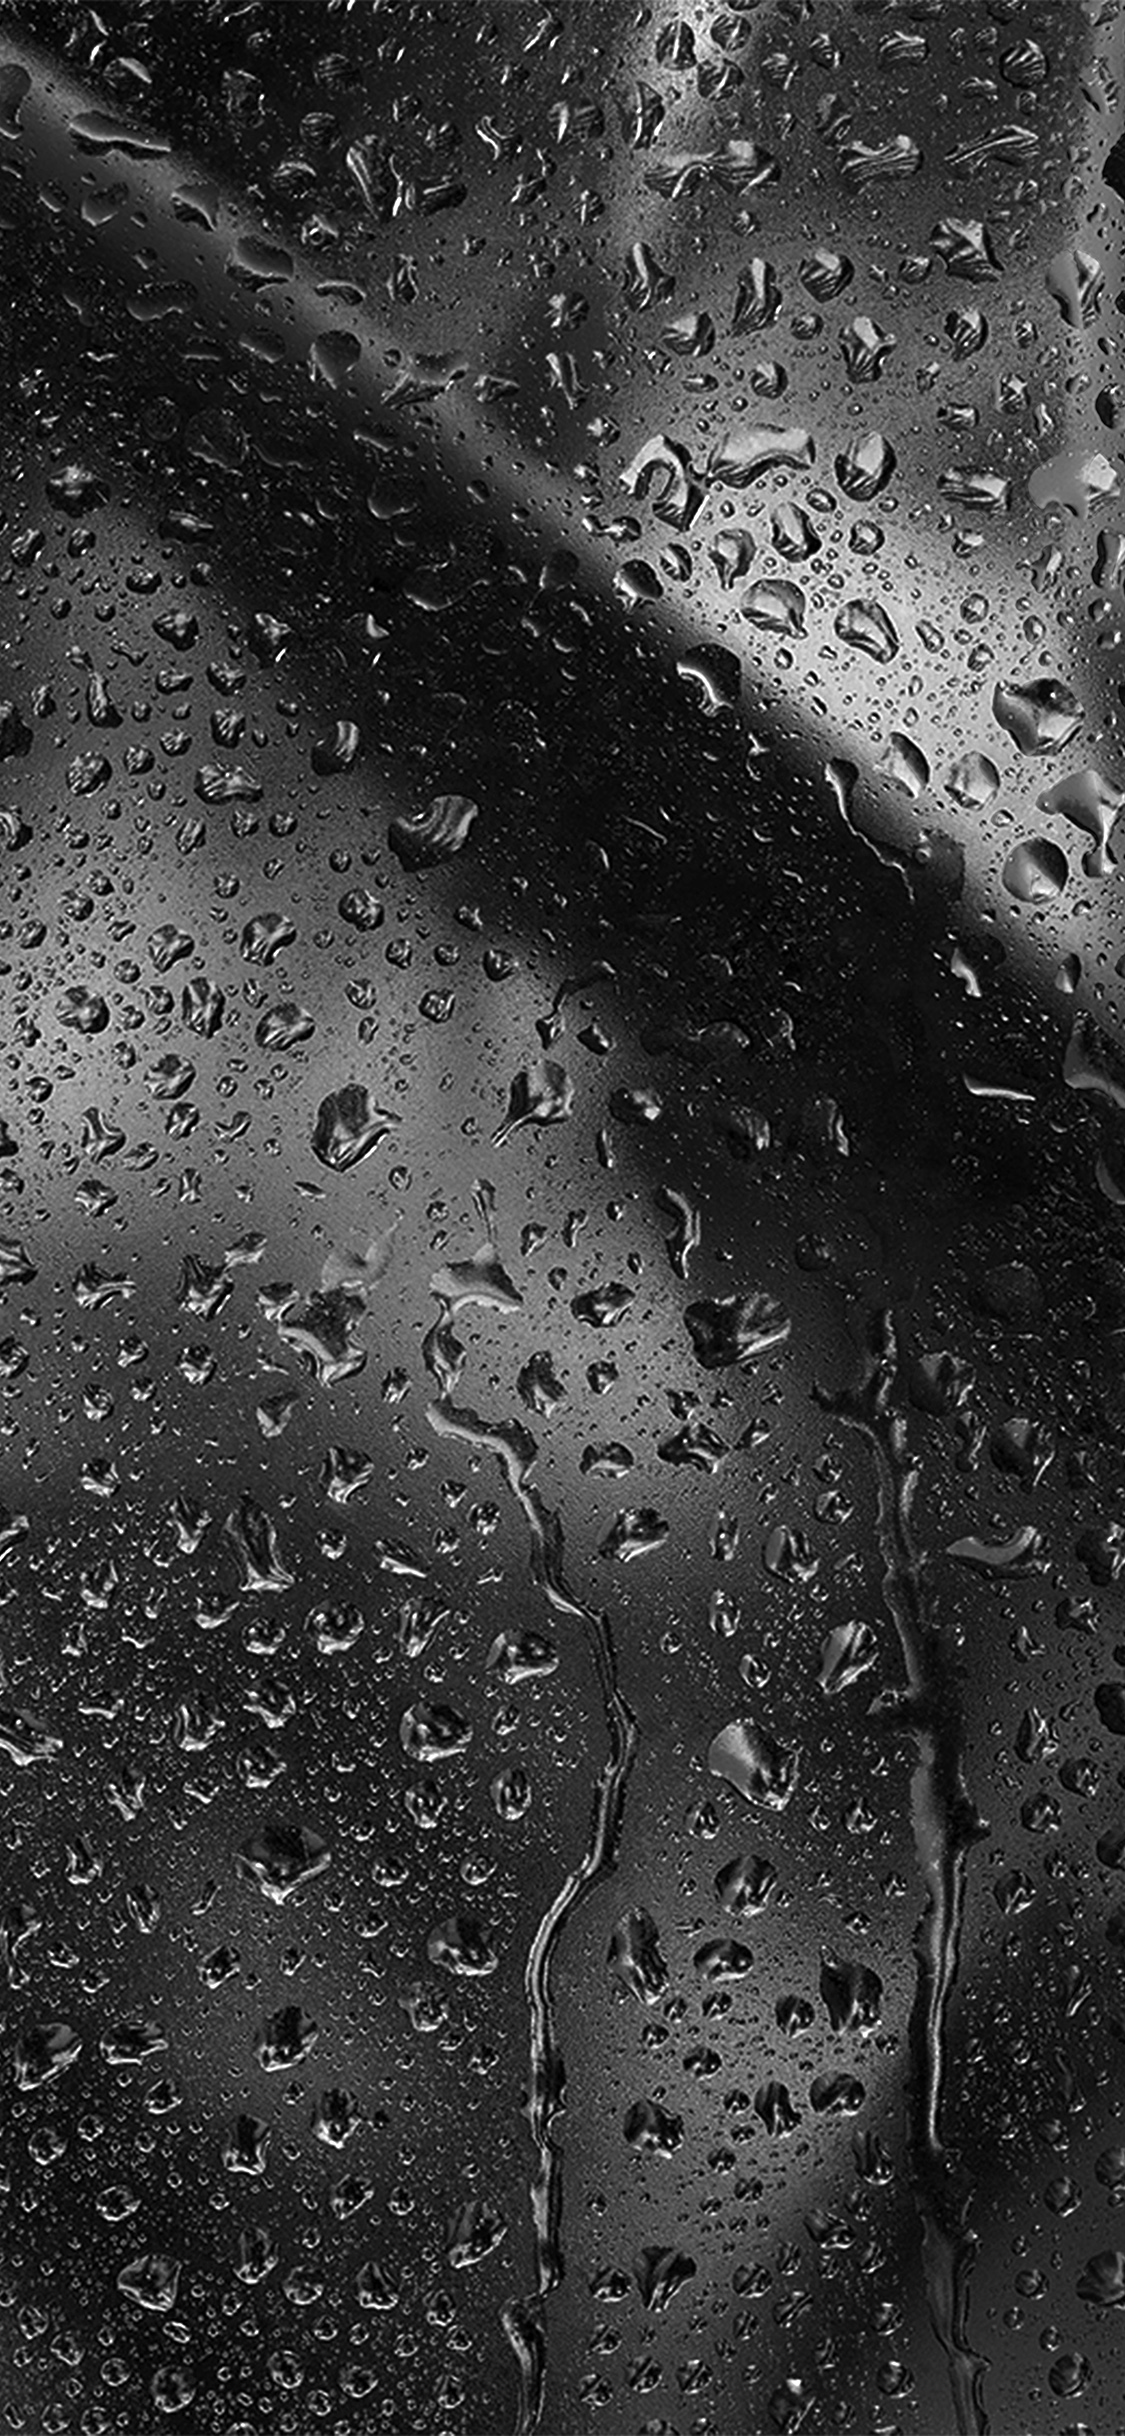 iPhonexpapers.com-Apple-iPhone-wallpaper-vx53-rain-bw-pattern-background-dark